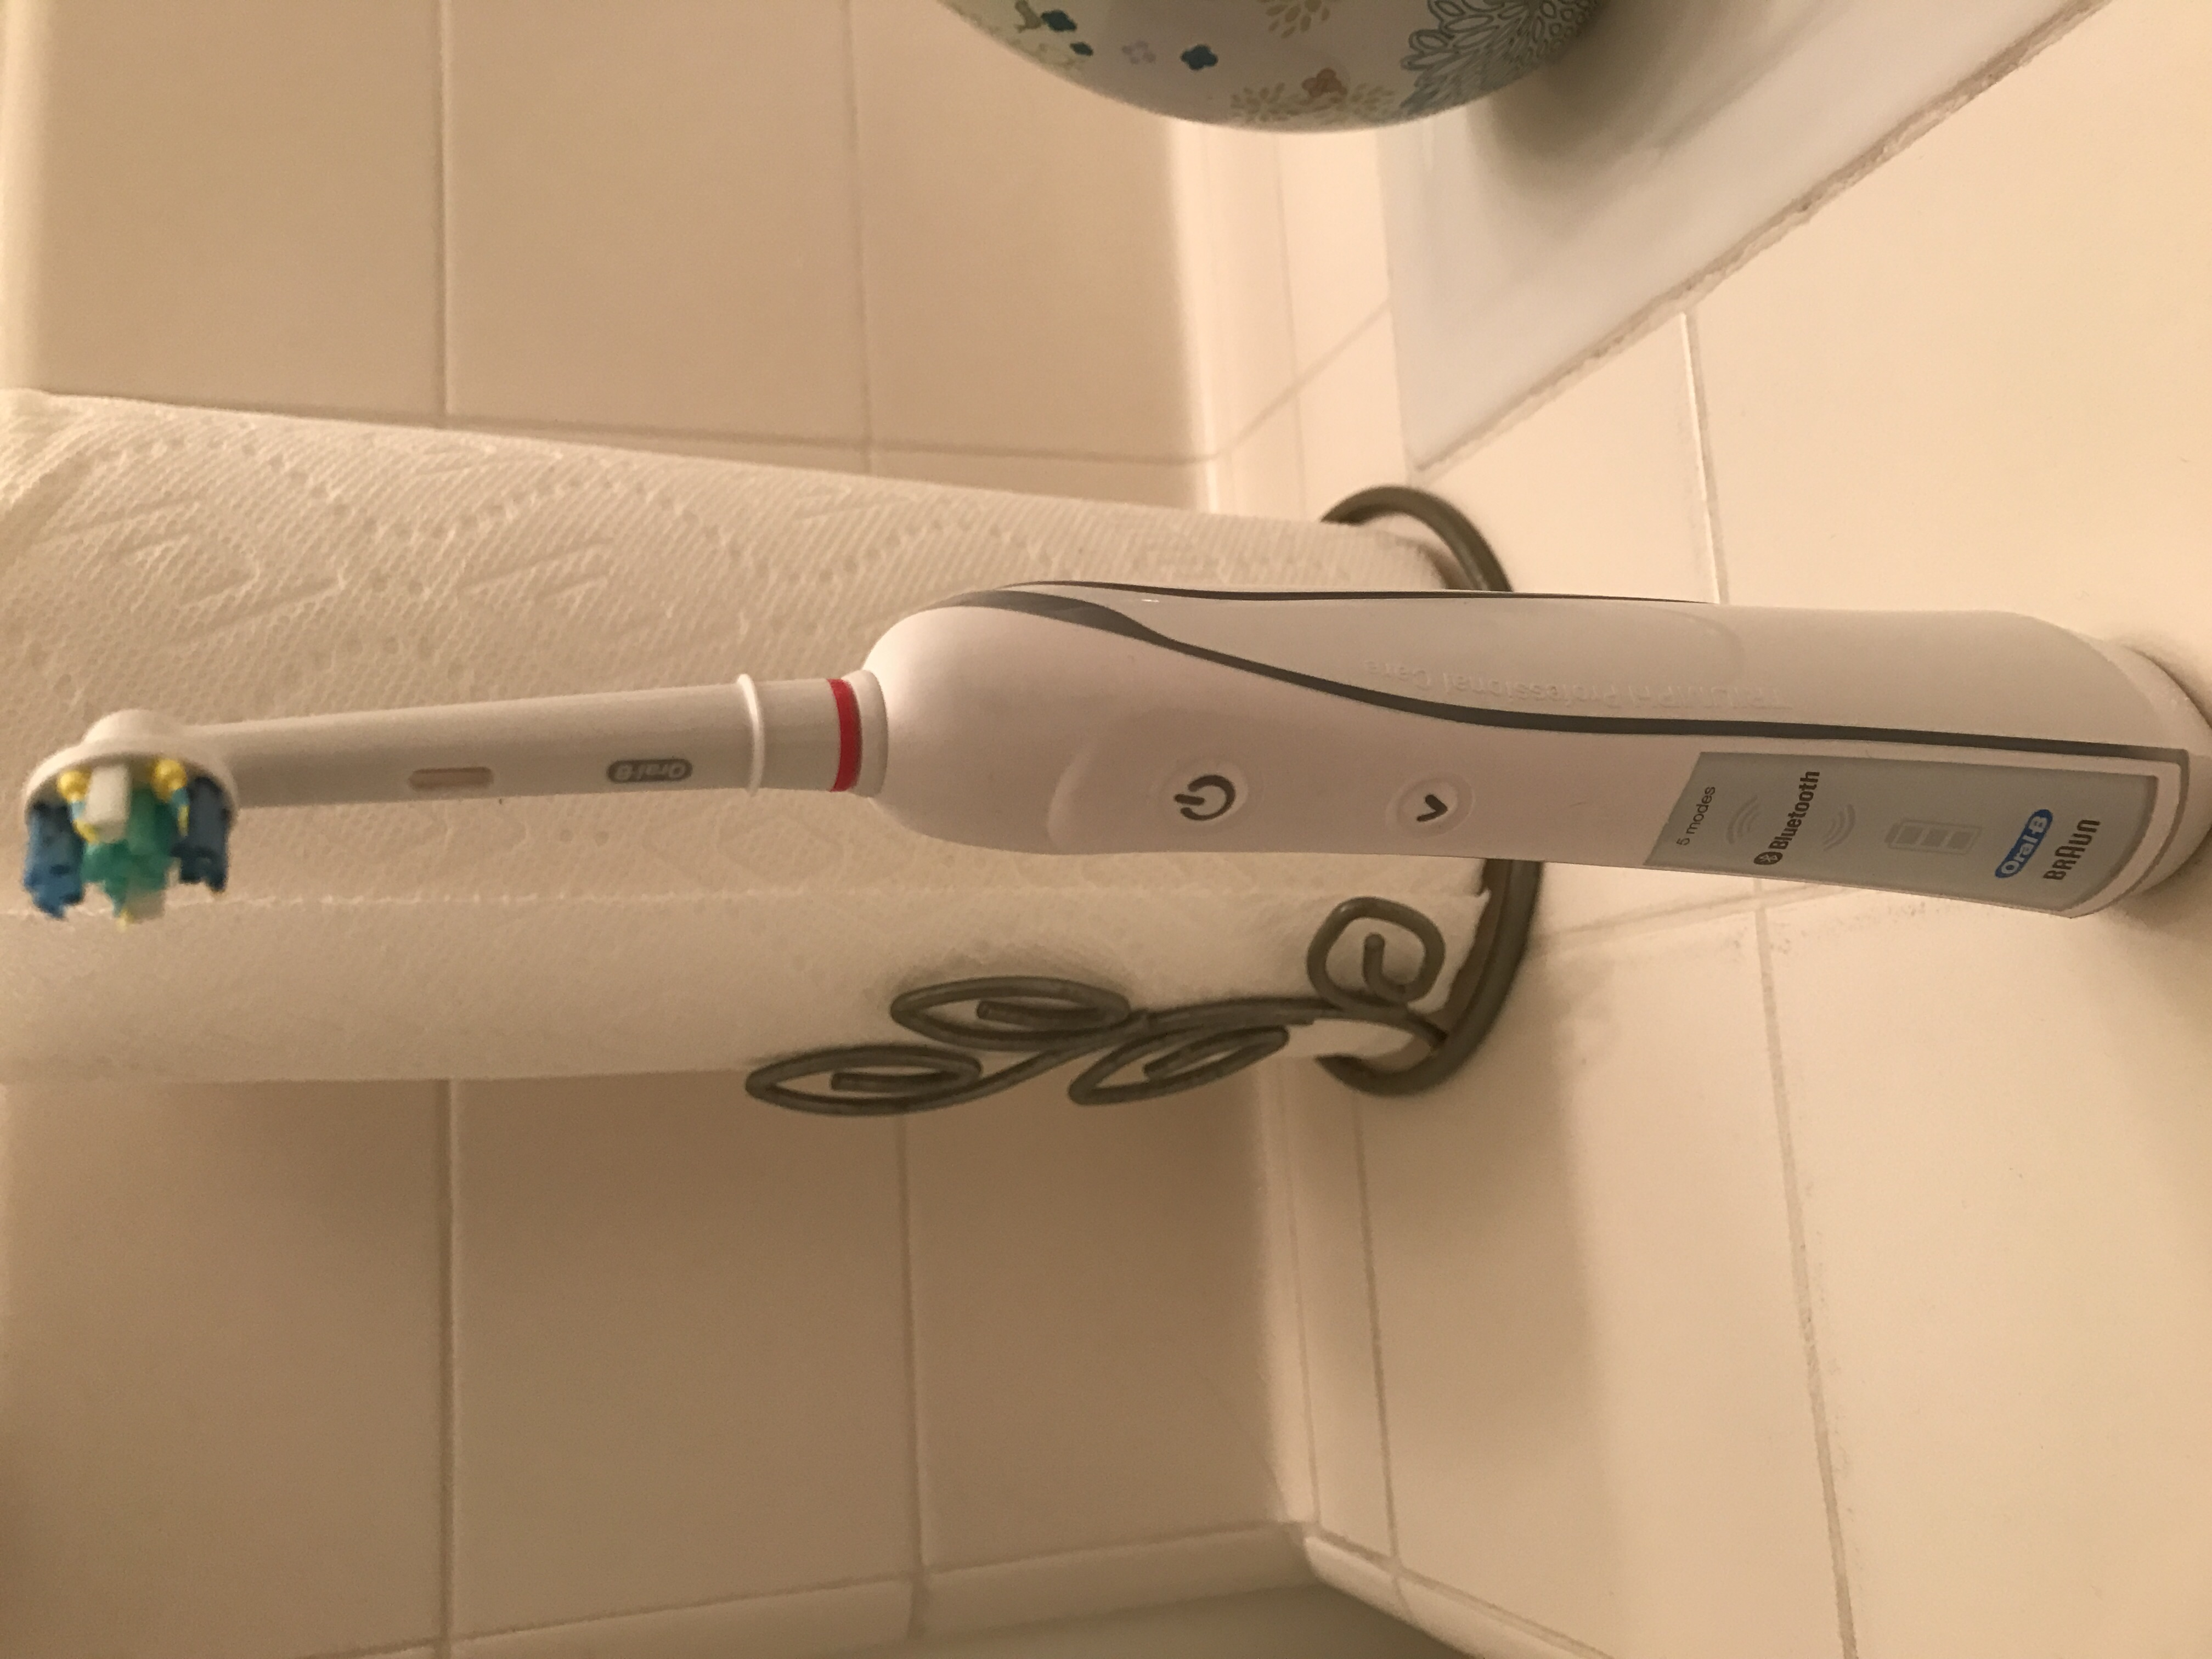 Photo of Oral-B 8000 Genius Electric Rechargeable Toothbrush uploaded by Munisa S.